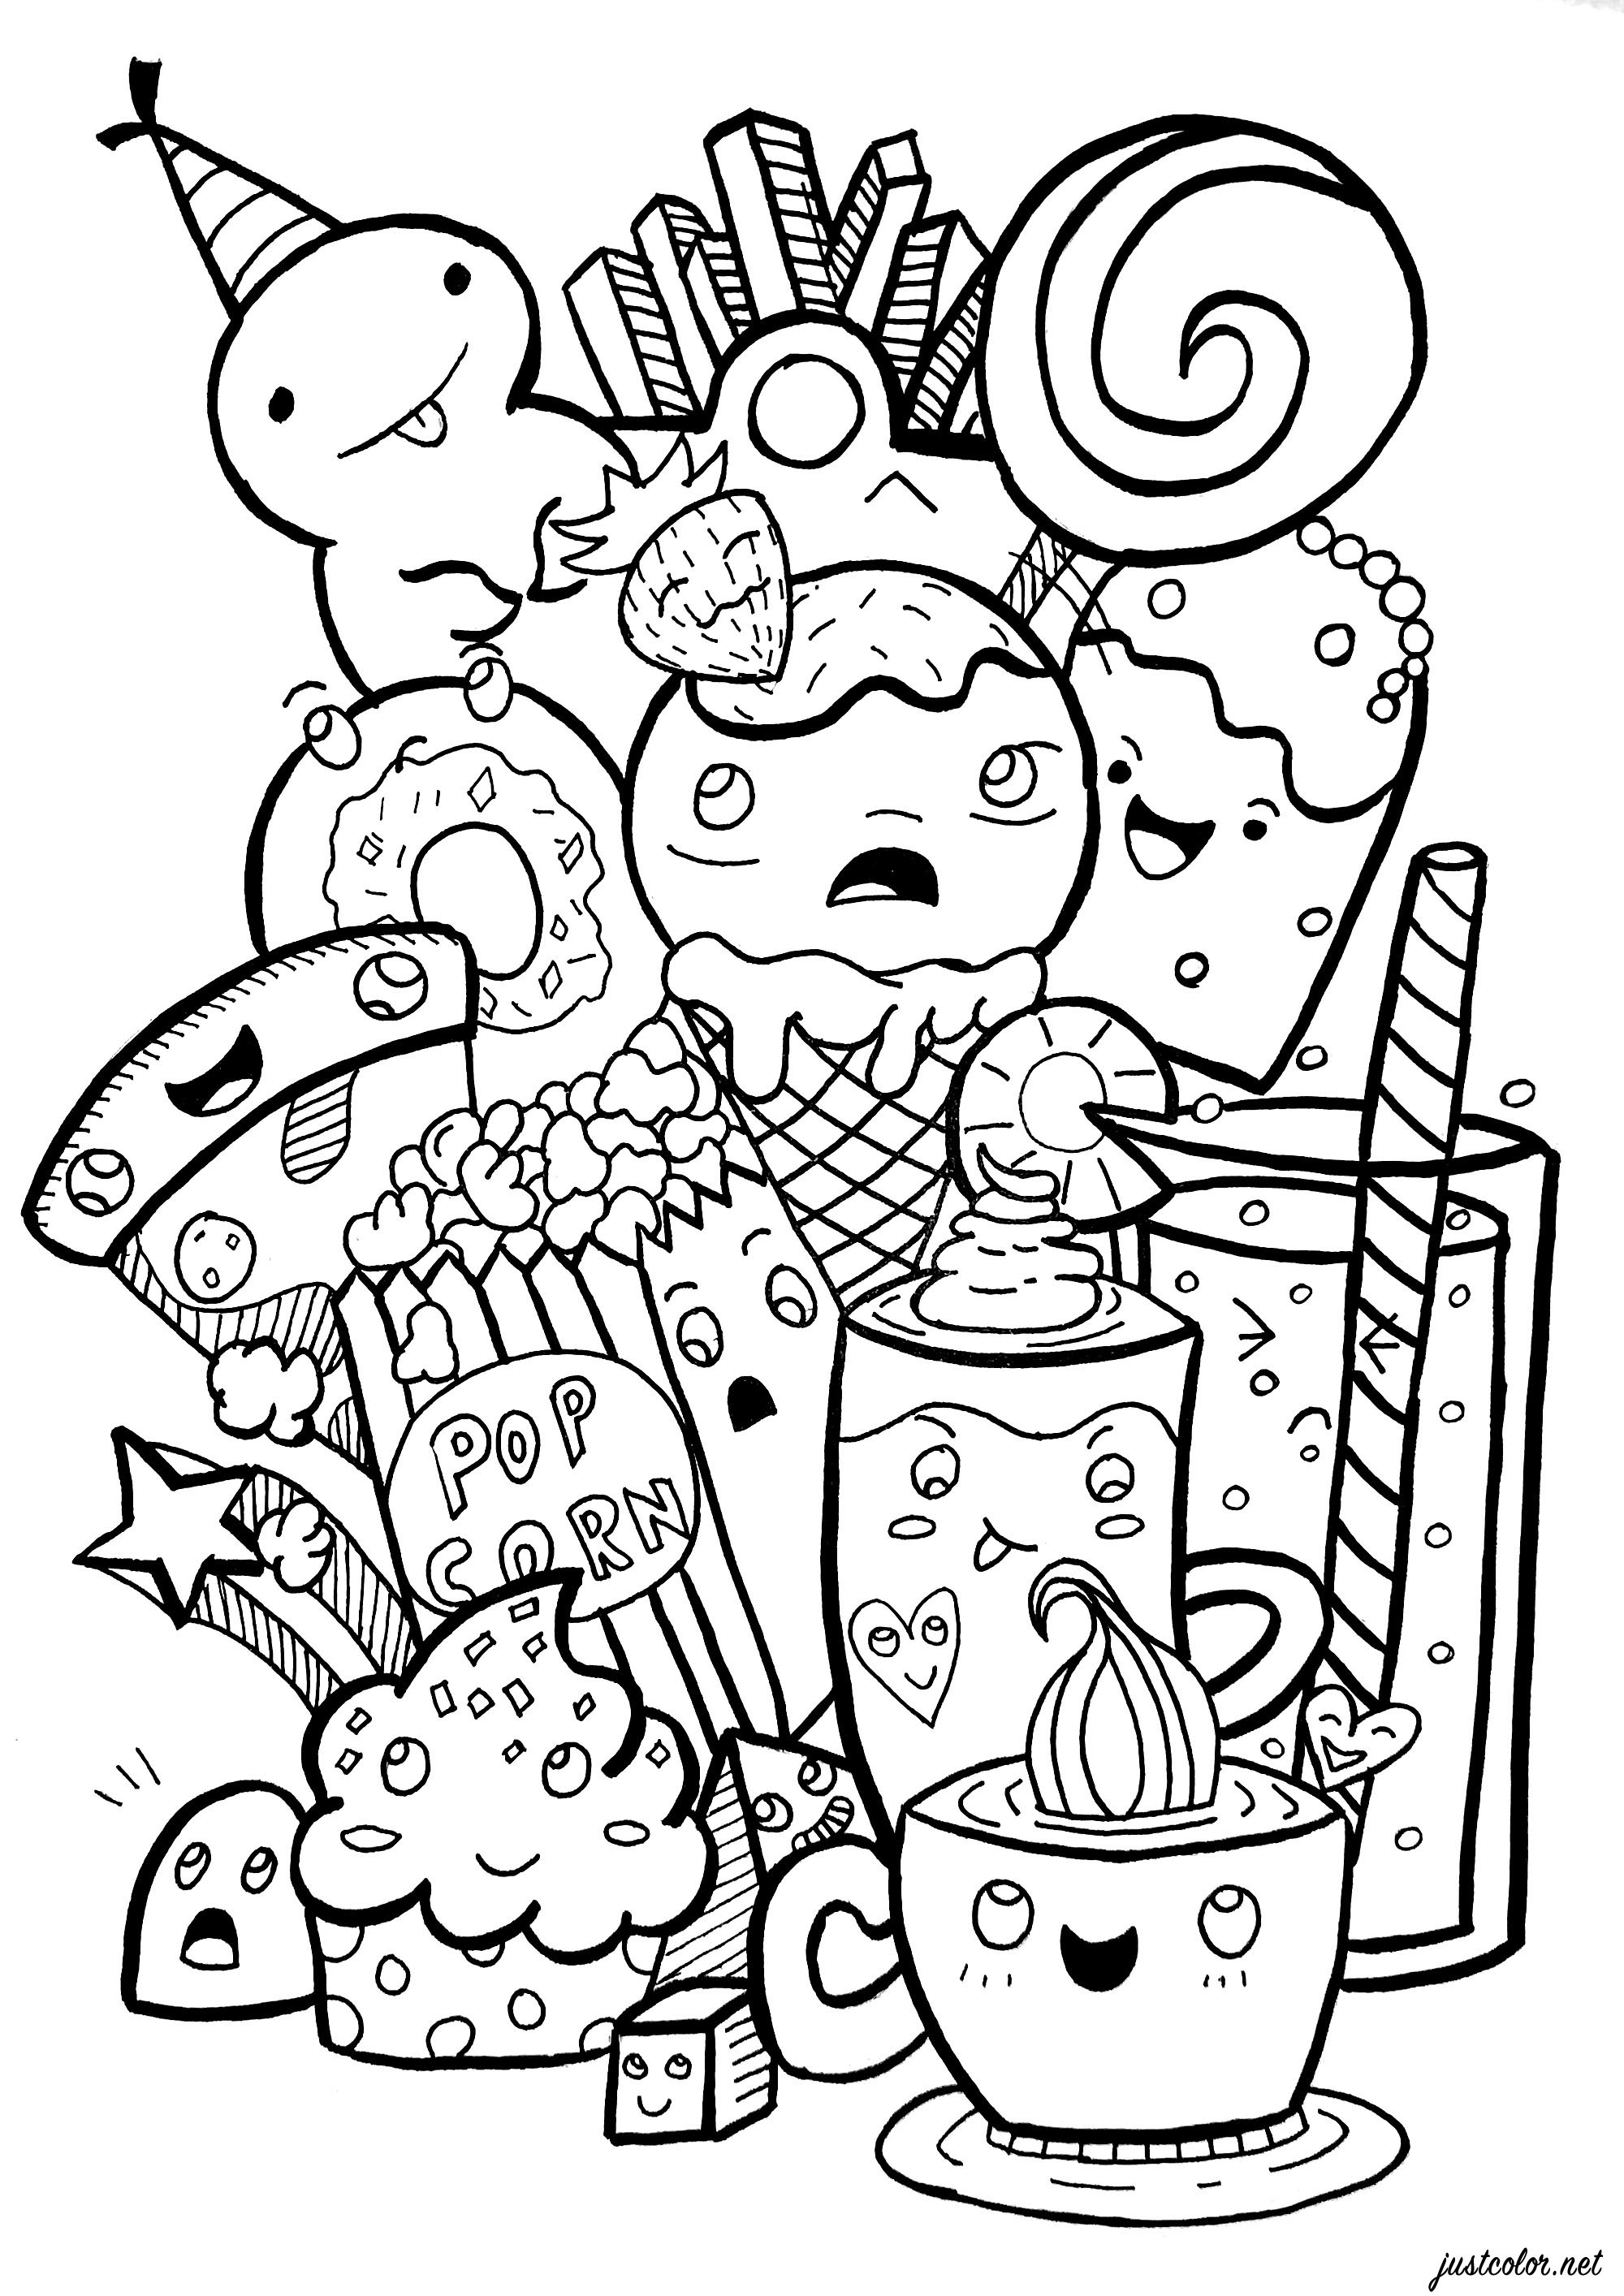 funny food coloring pages colorfly freebie flavor the donuts by coloring them up food pages funny coloring